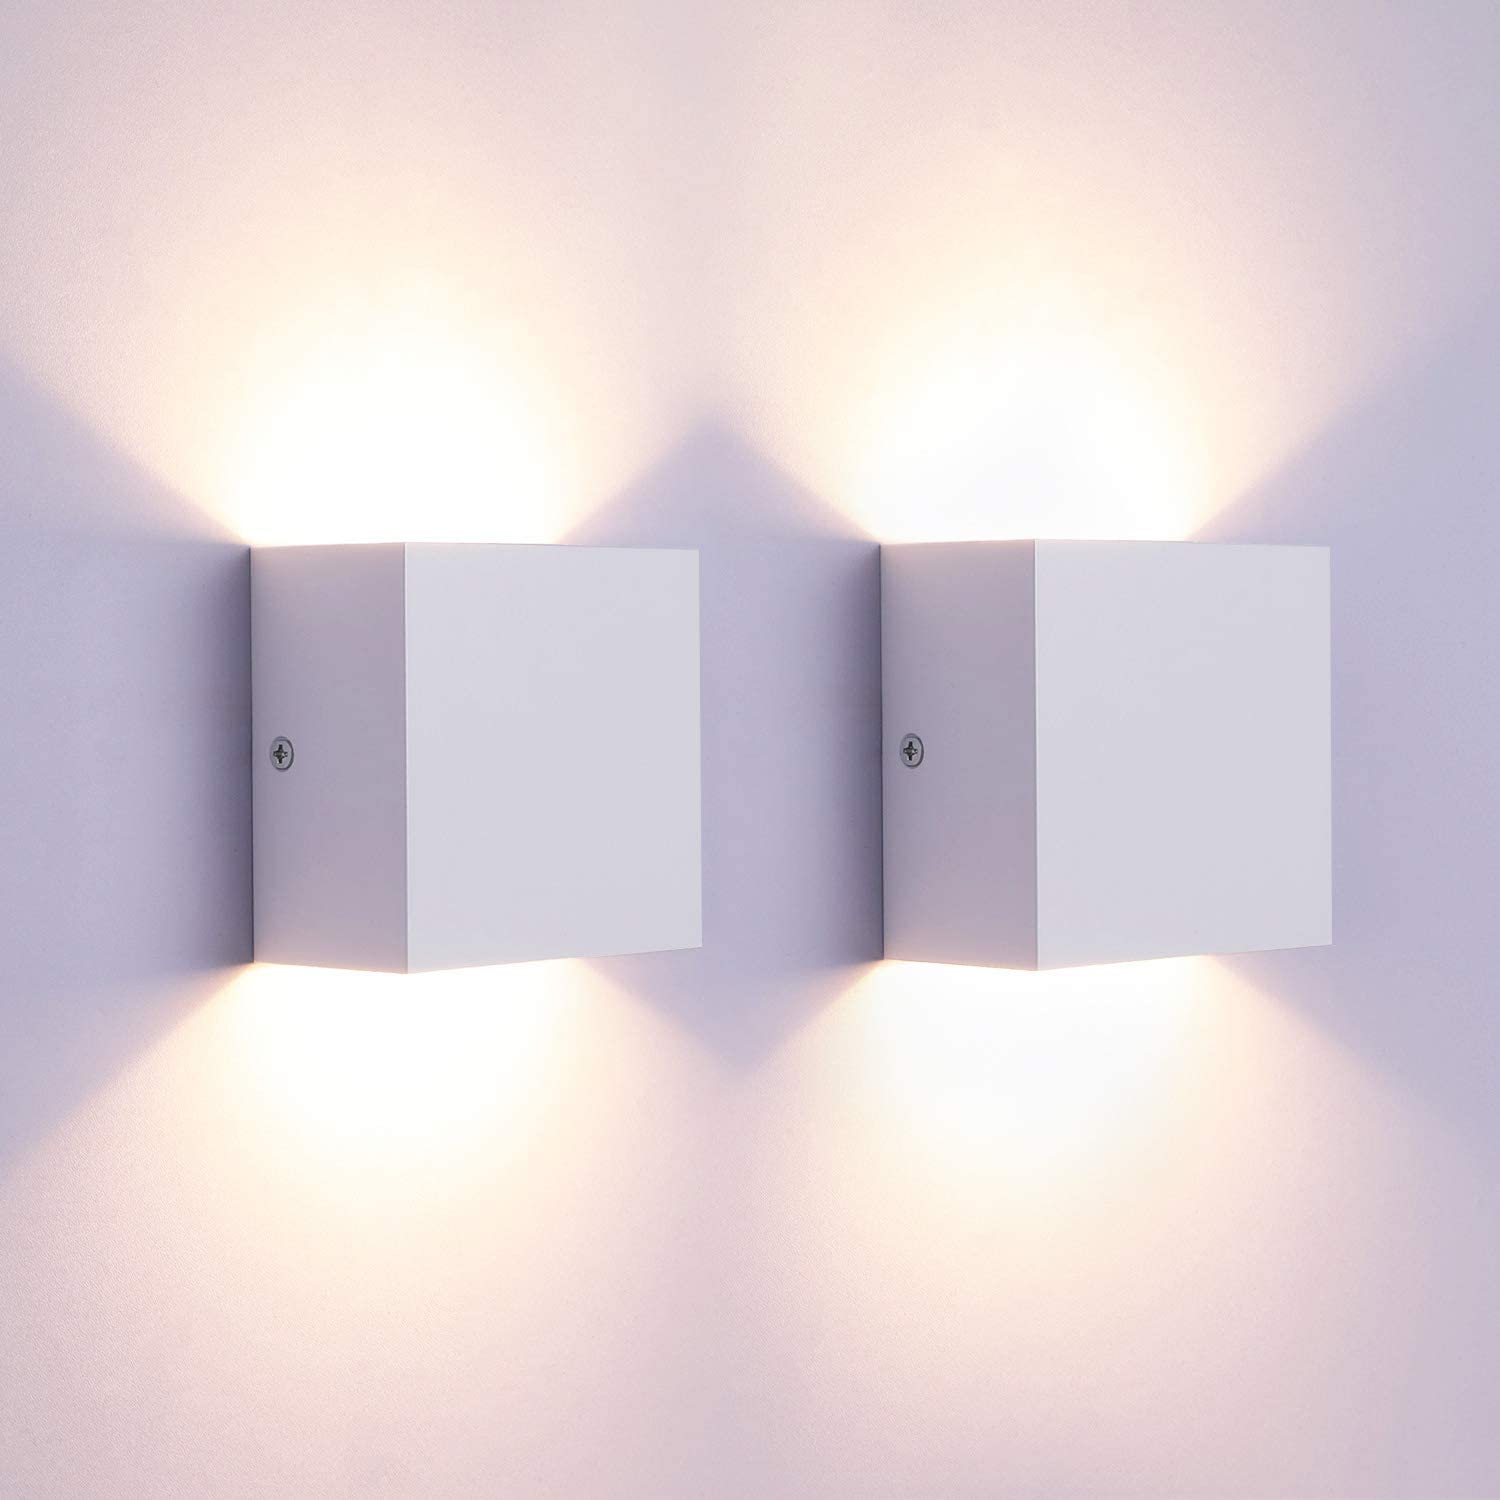 Lightess Modern Wall Sconce 10W White Hardwired, Set of 2 Up Down Wall Mount Lights Indoor Mini Metal LED Wall Lamp for Living Room Bedroom Hallway Decor, Warm White, O1181TP